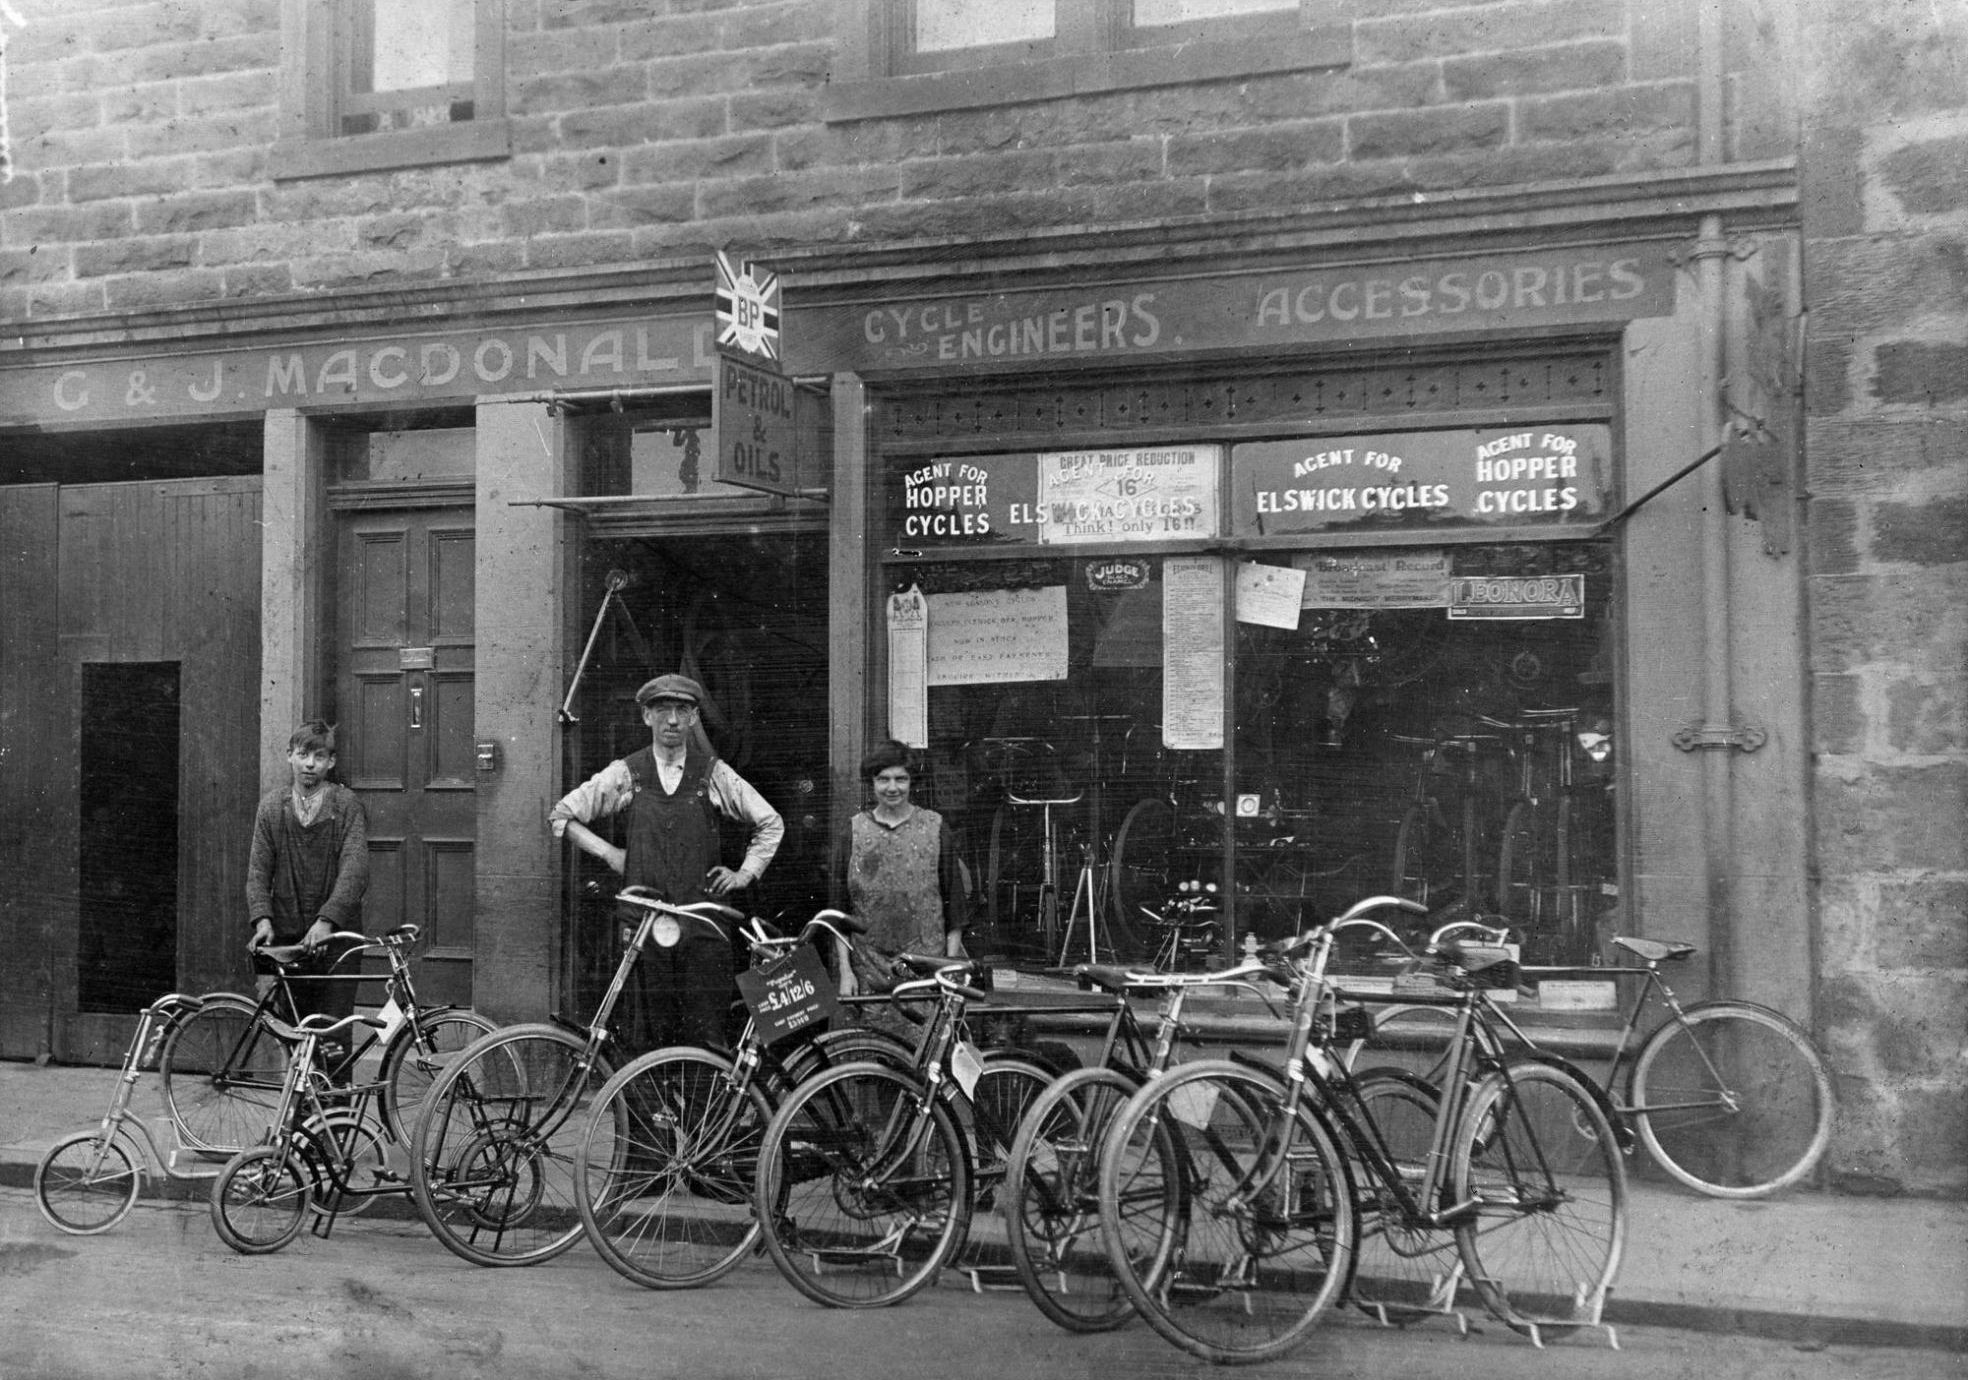 G. and J. MacDonald's bicycle shop, in Dalkeith ...